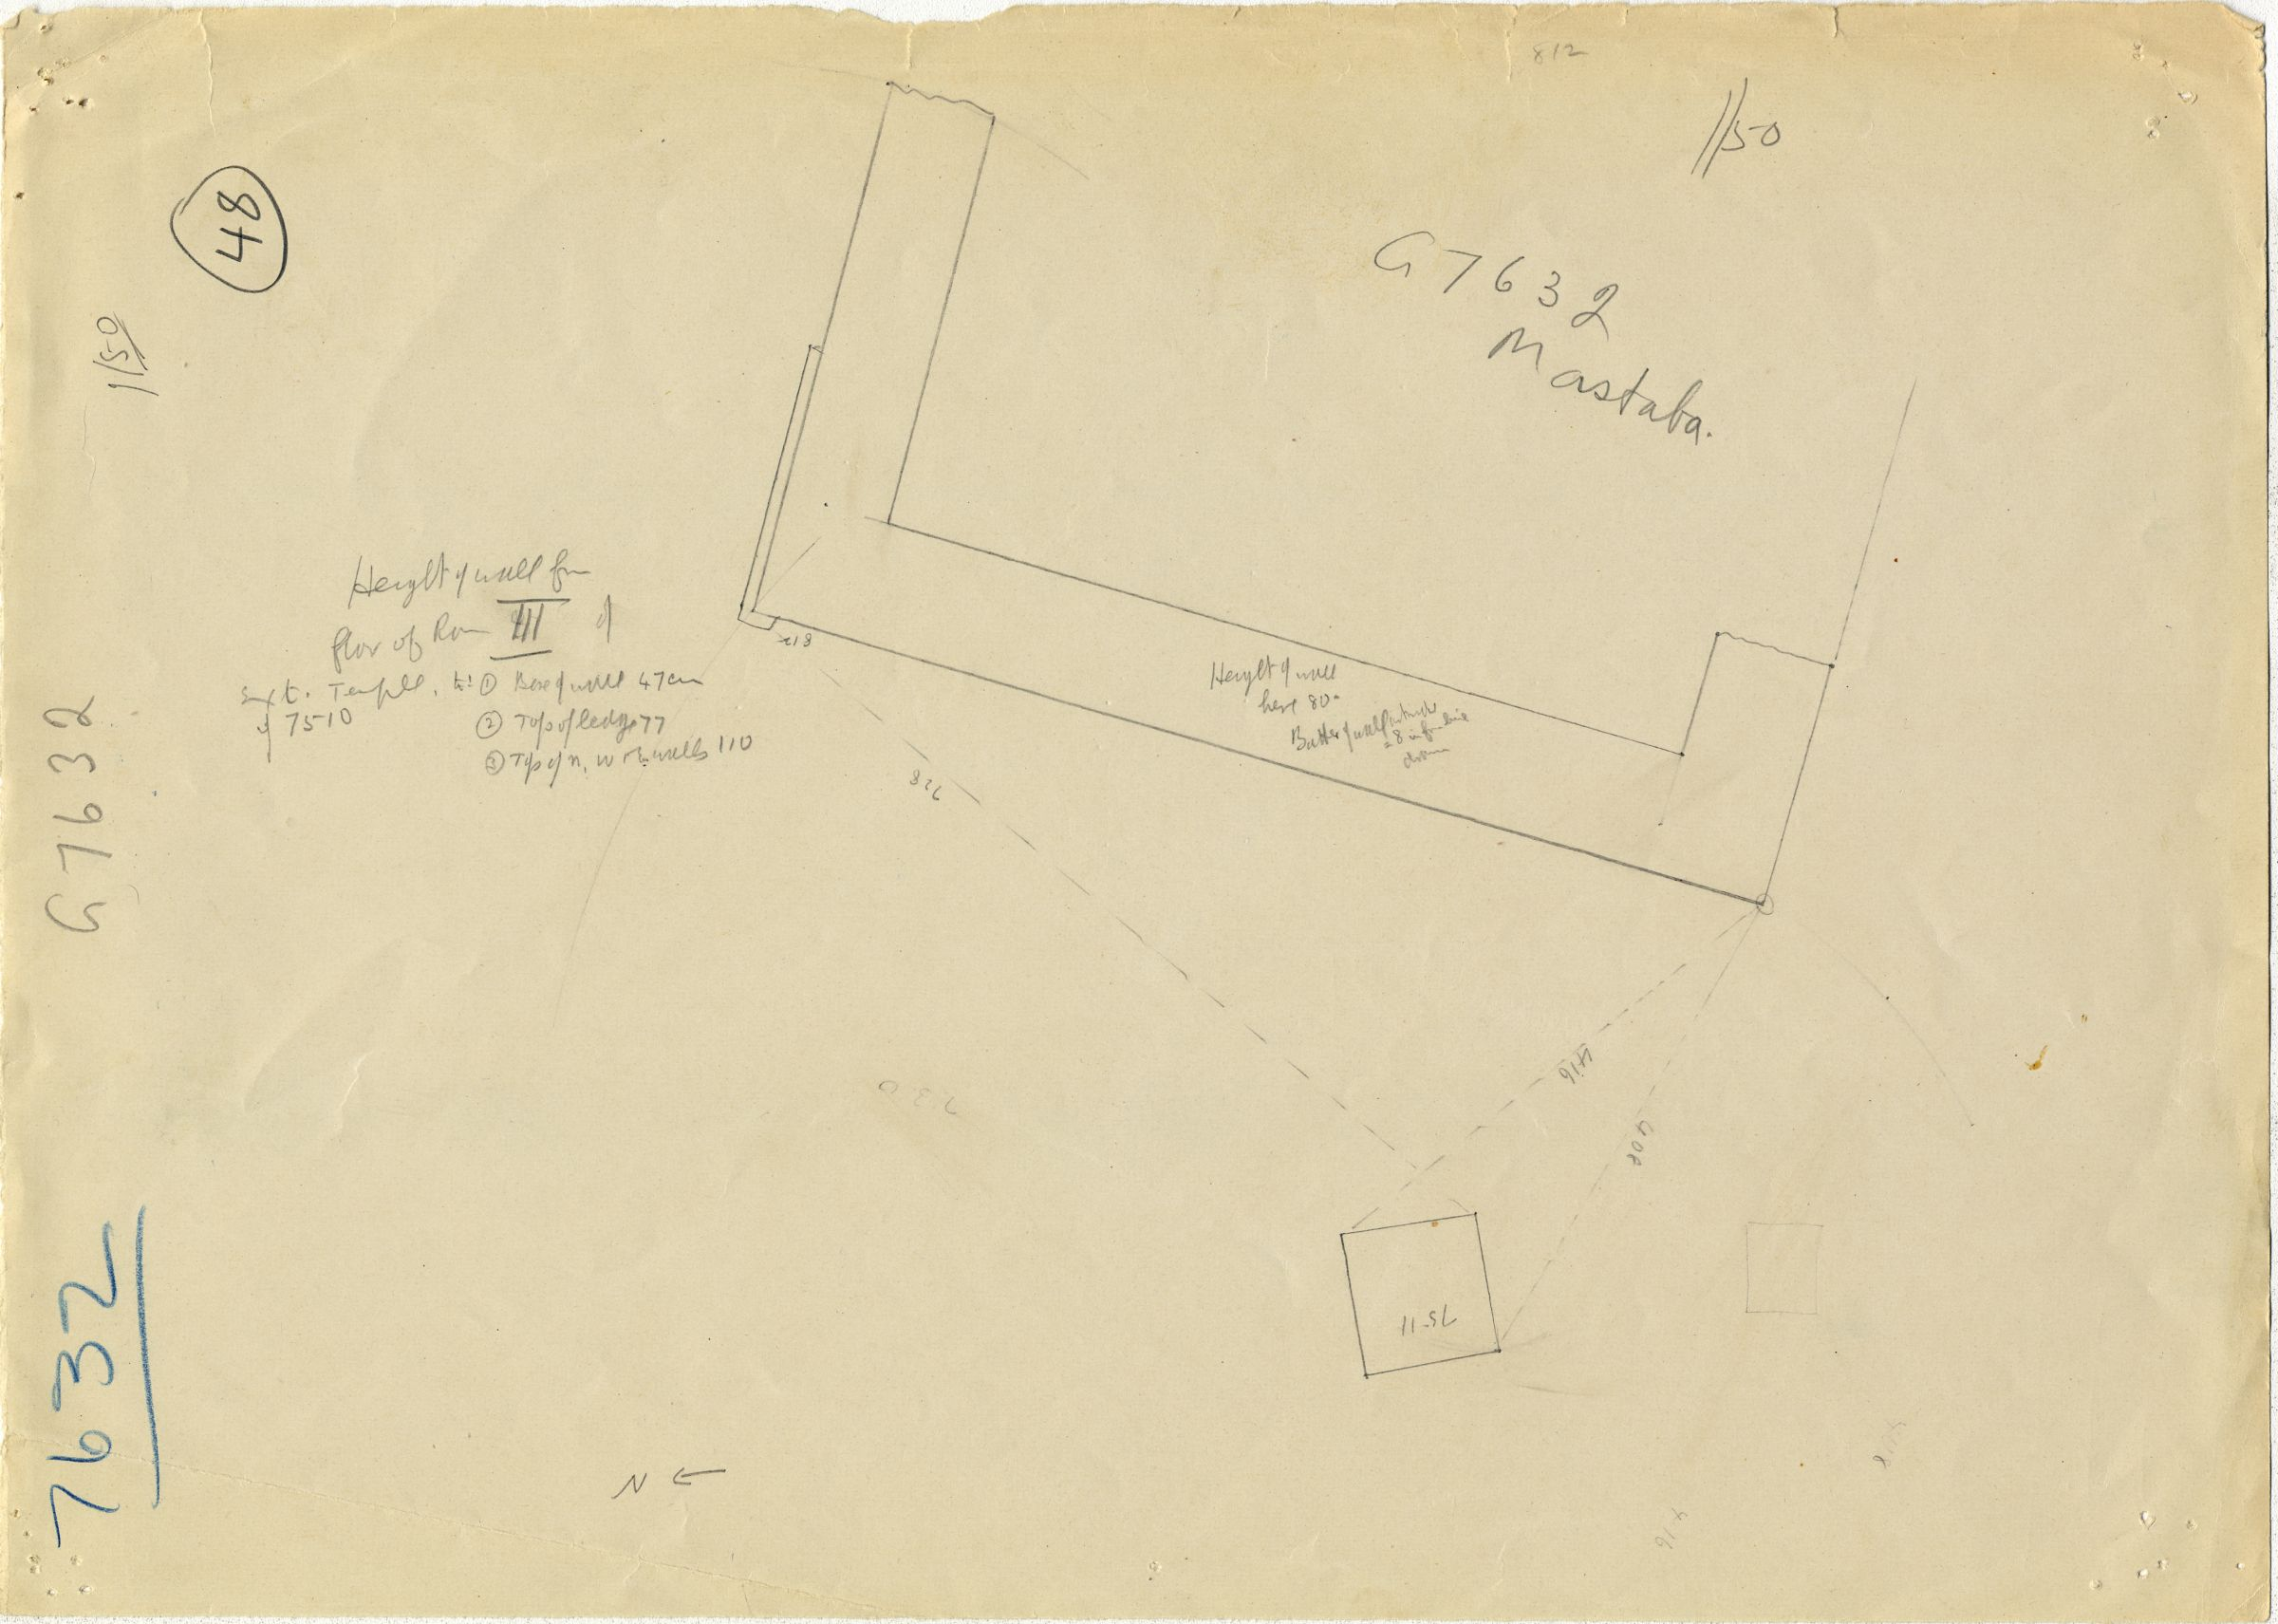 Maps and plans: G 7632, Partial plan